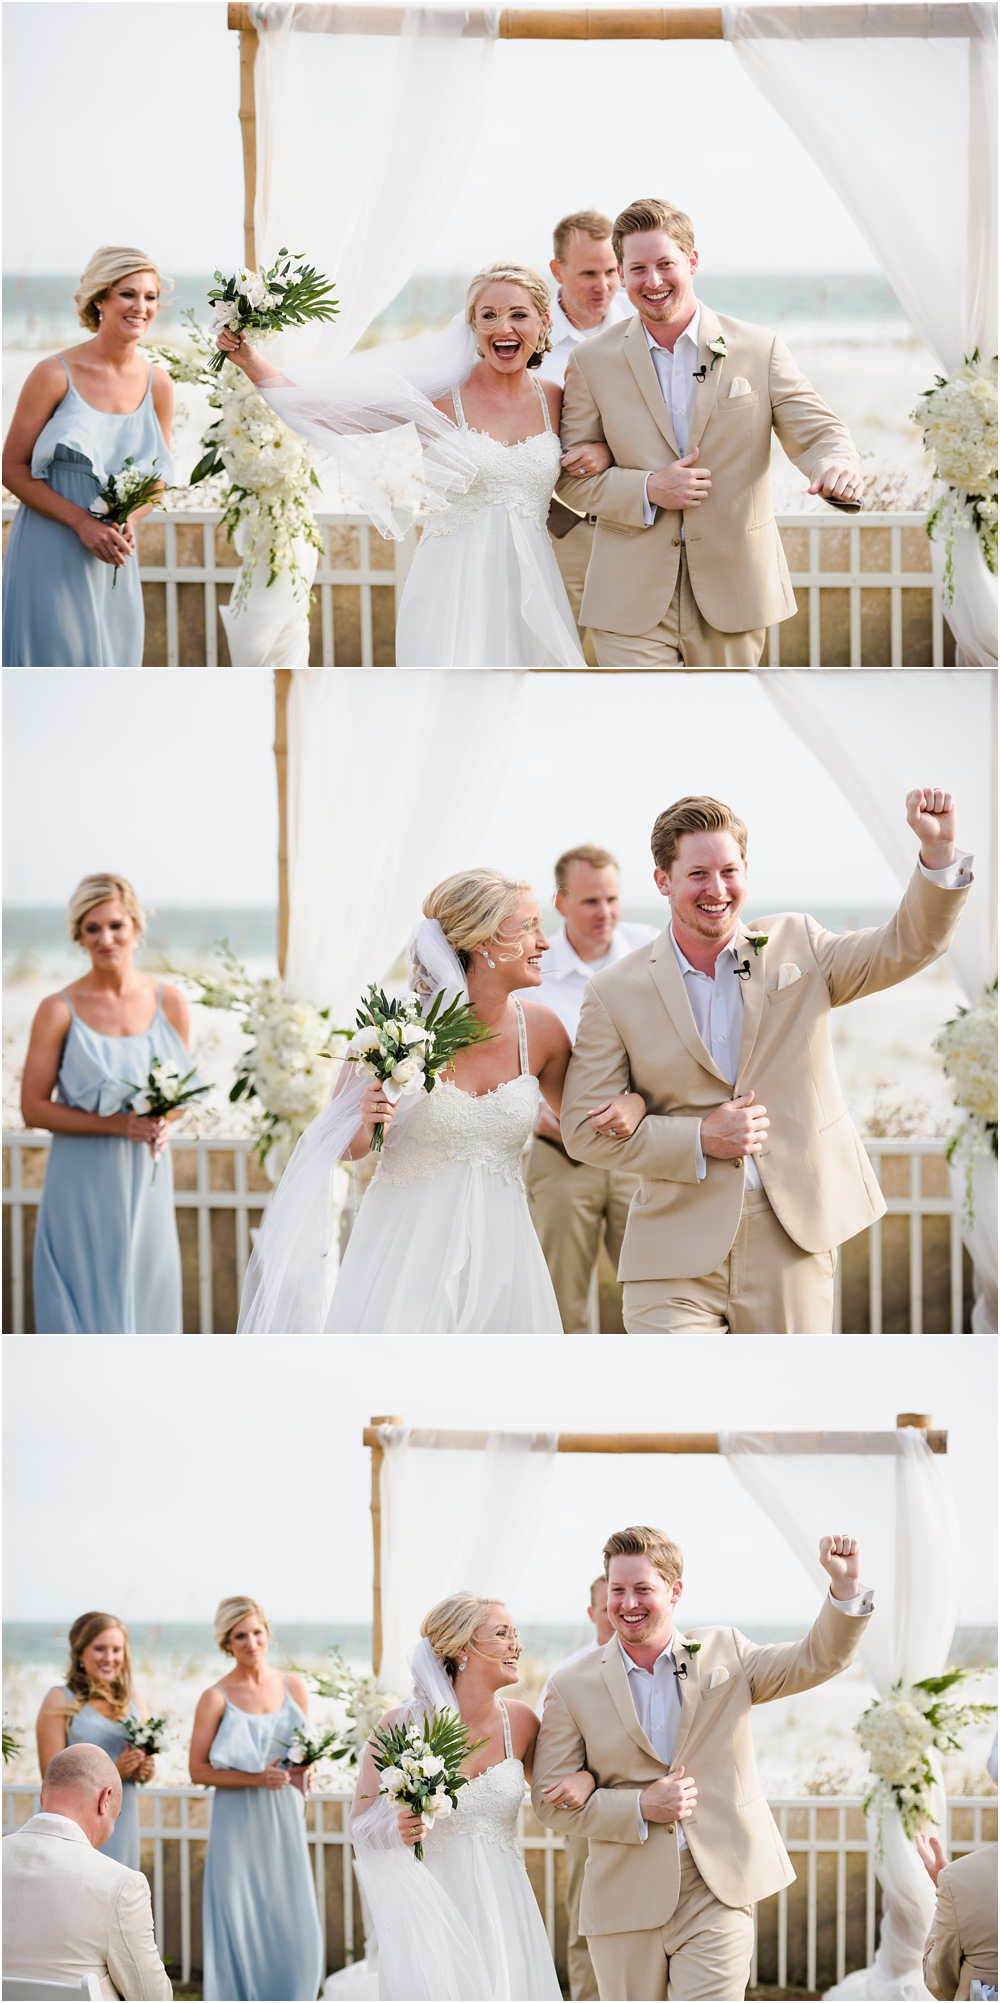 dillard-florida-wedding-photographer-panama-city-beach-dothan-tallahassee-kiersten-grant-photography-115.jpg